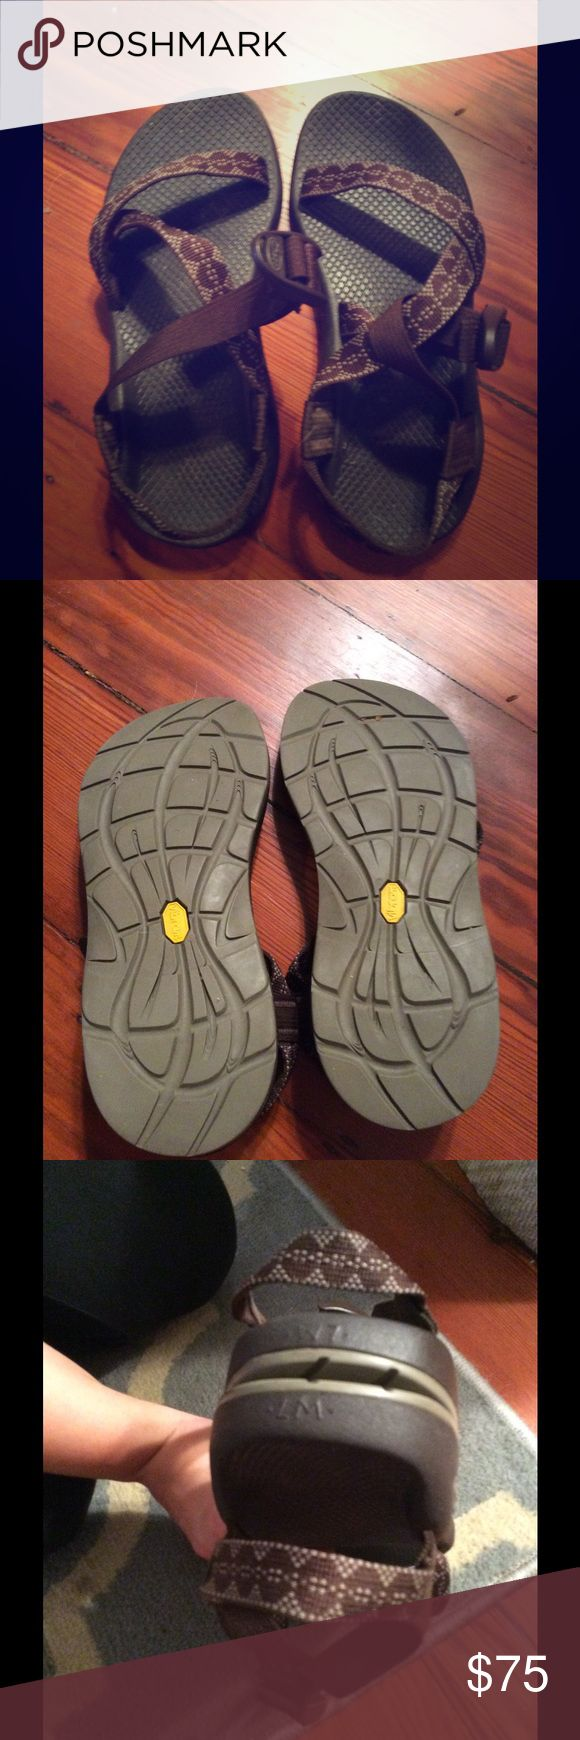 Women's Authentic Chacos Sandal Gently used women's chaco's. very well taken care of with no flaws. Very much open to offers! Chacos Shoes Sandals